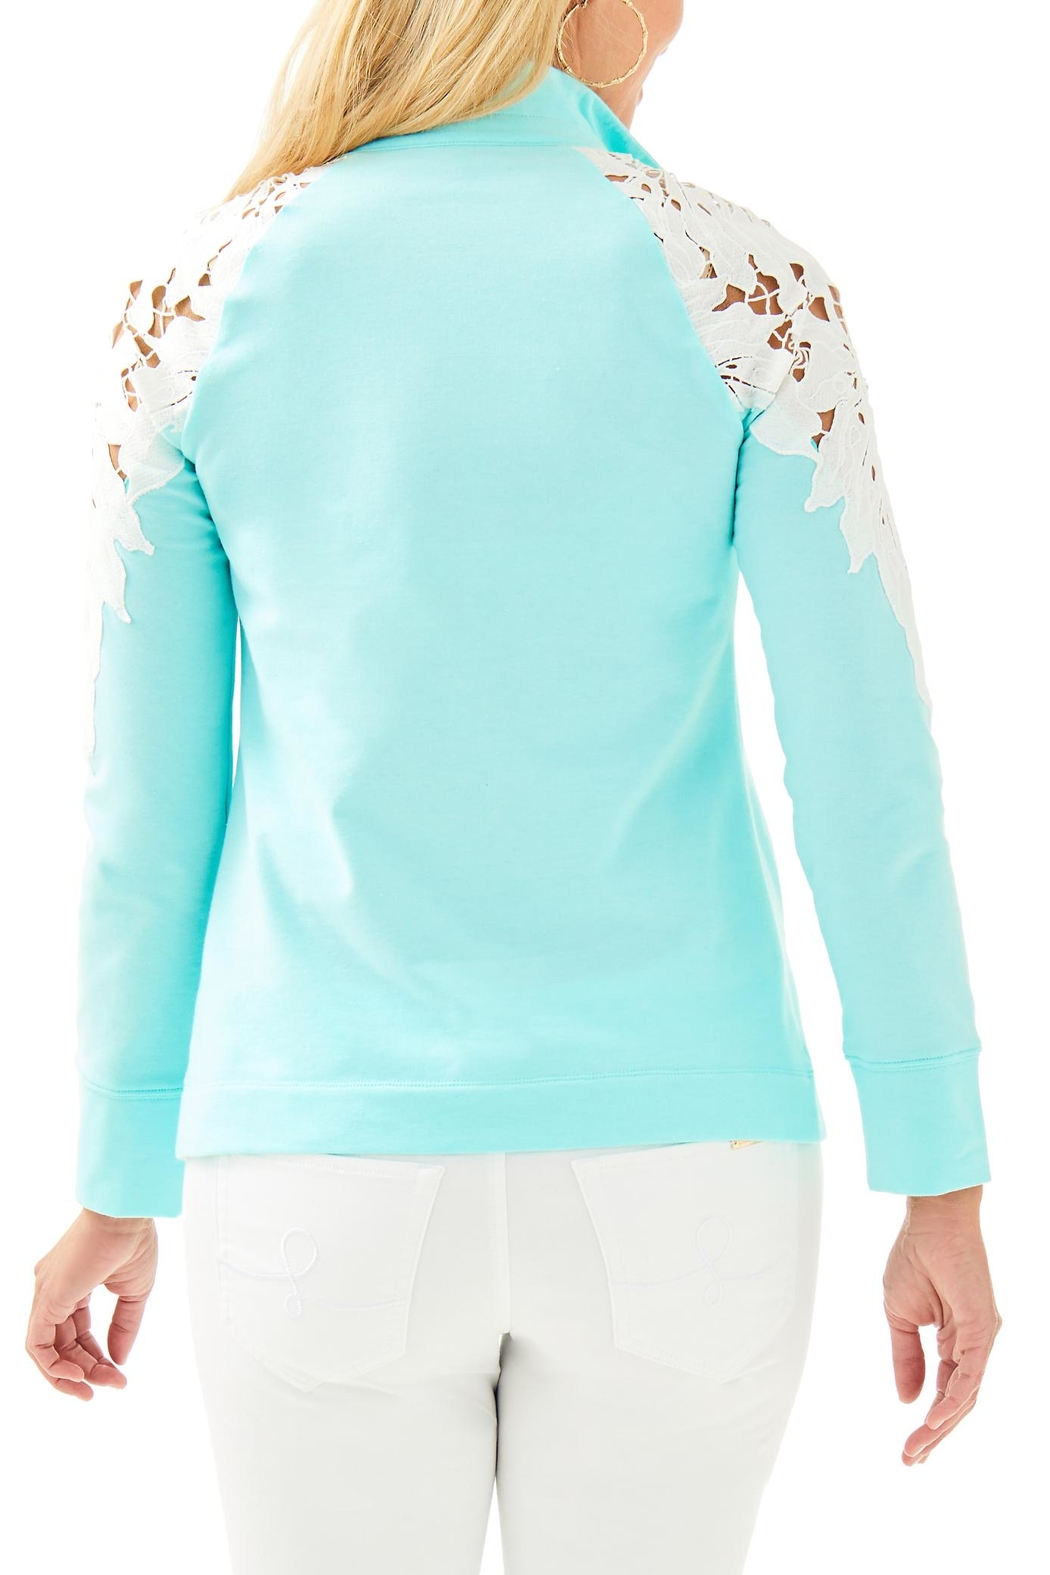 Lilly Pulitzer Skipper Popover - Front Full Image